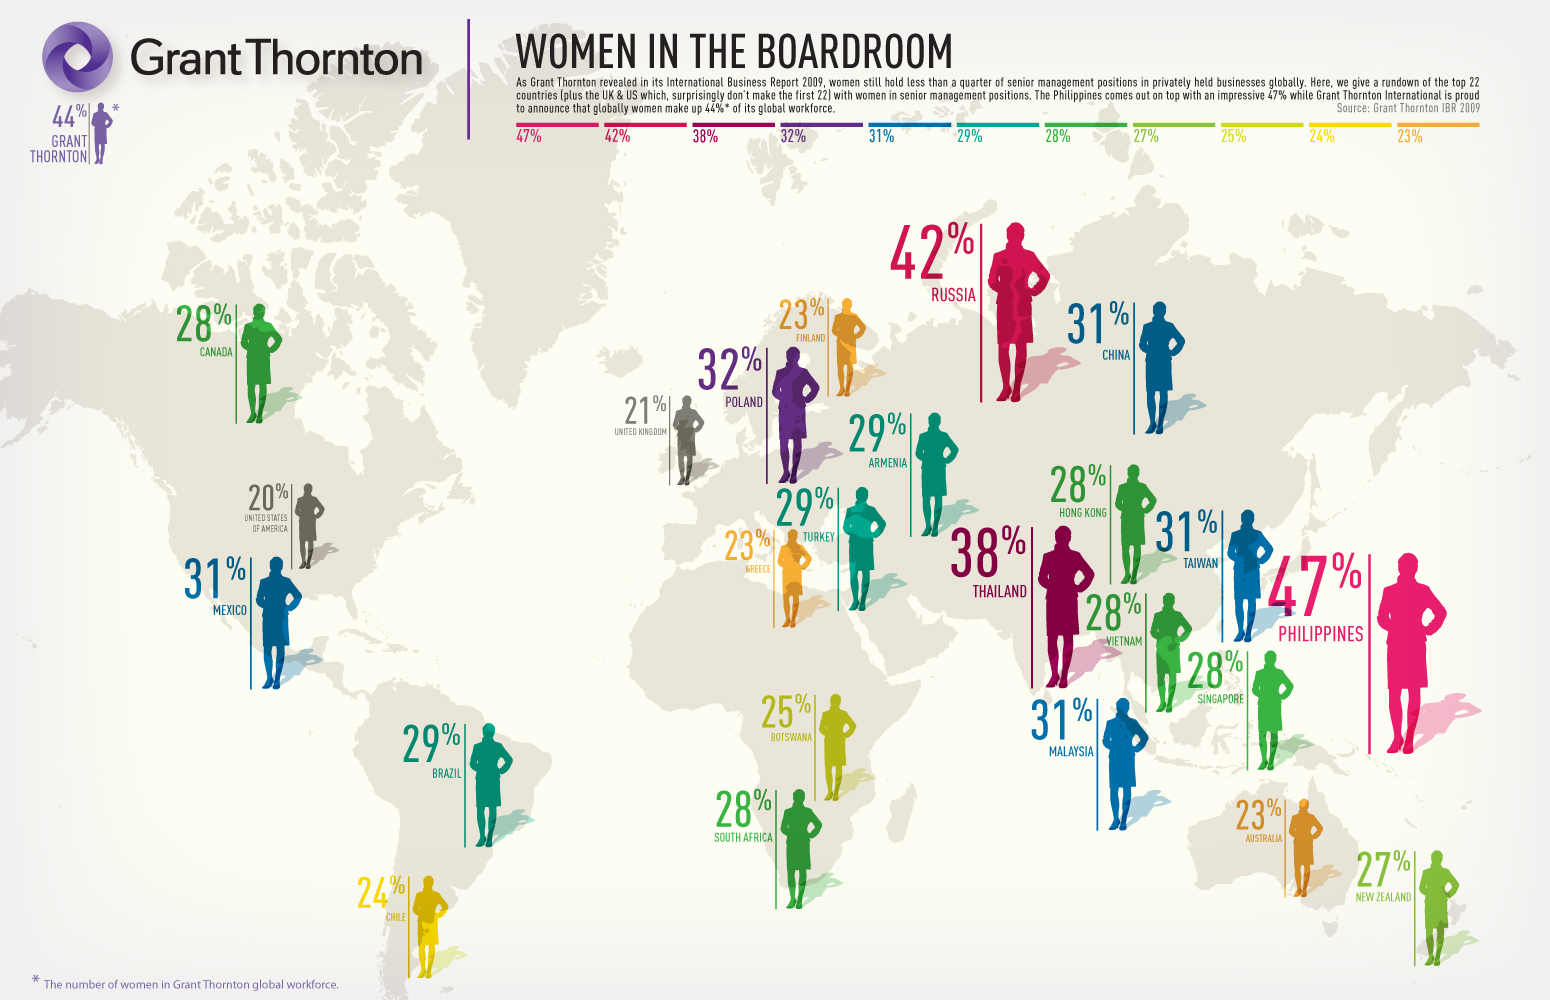 Women in the boardroom explains that in 2009 women still hold less than a quarter of senior management positions in privately help businesses globally.